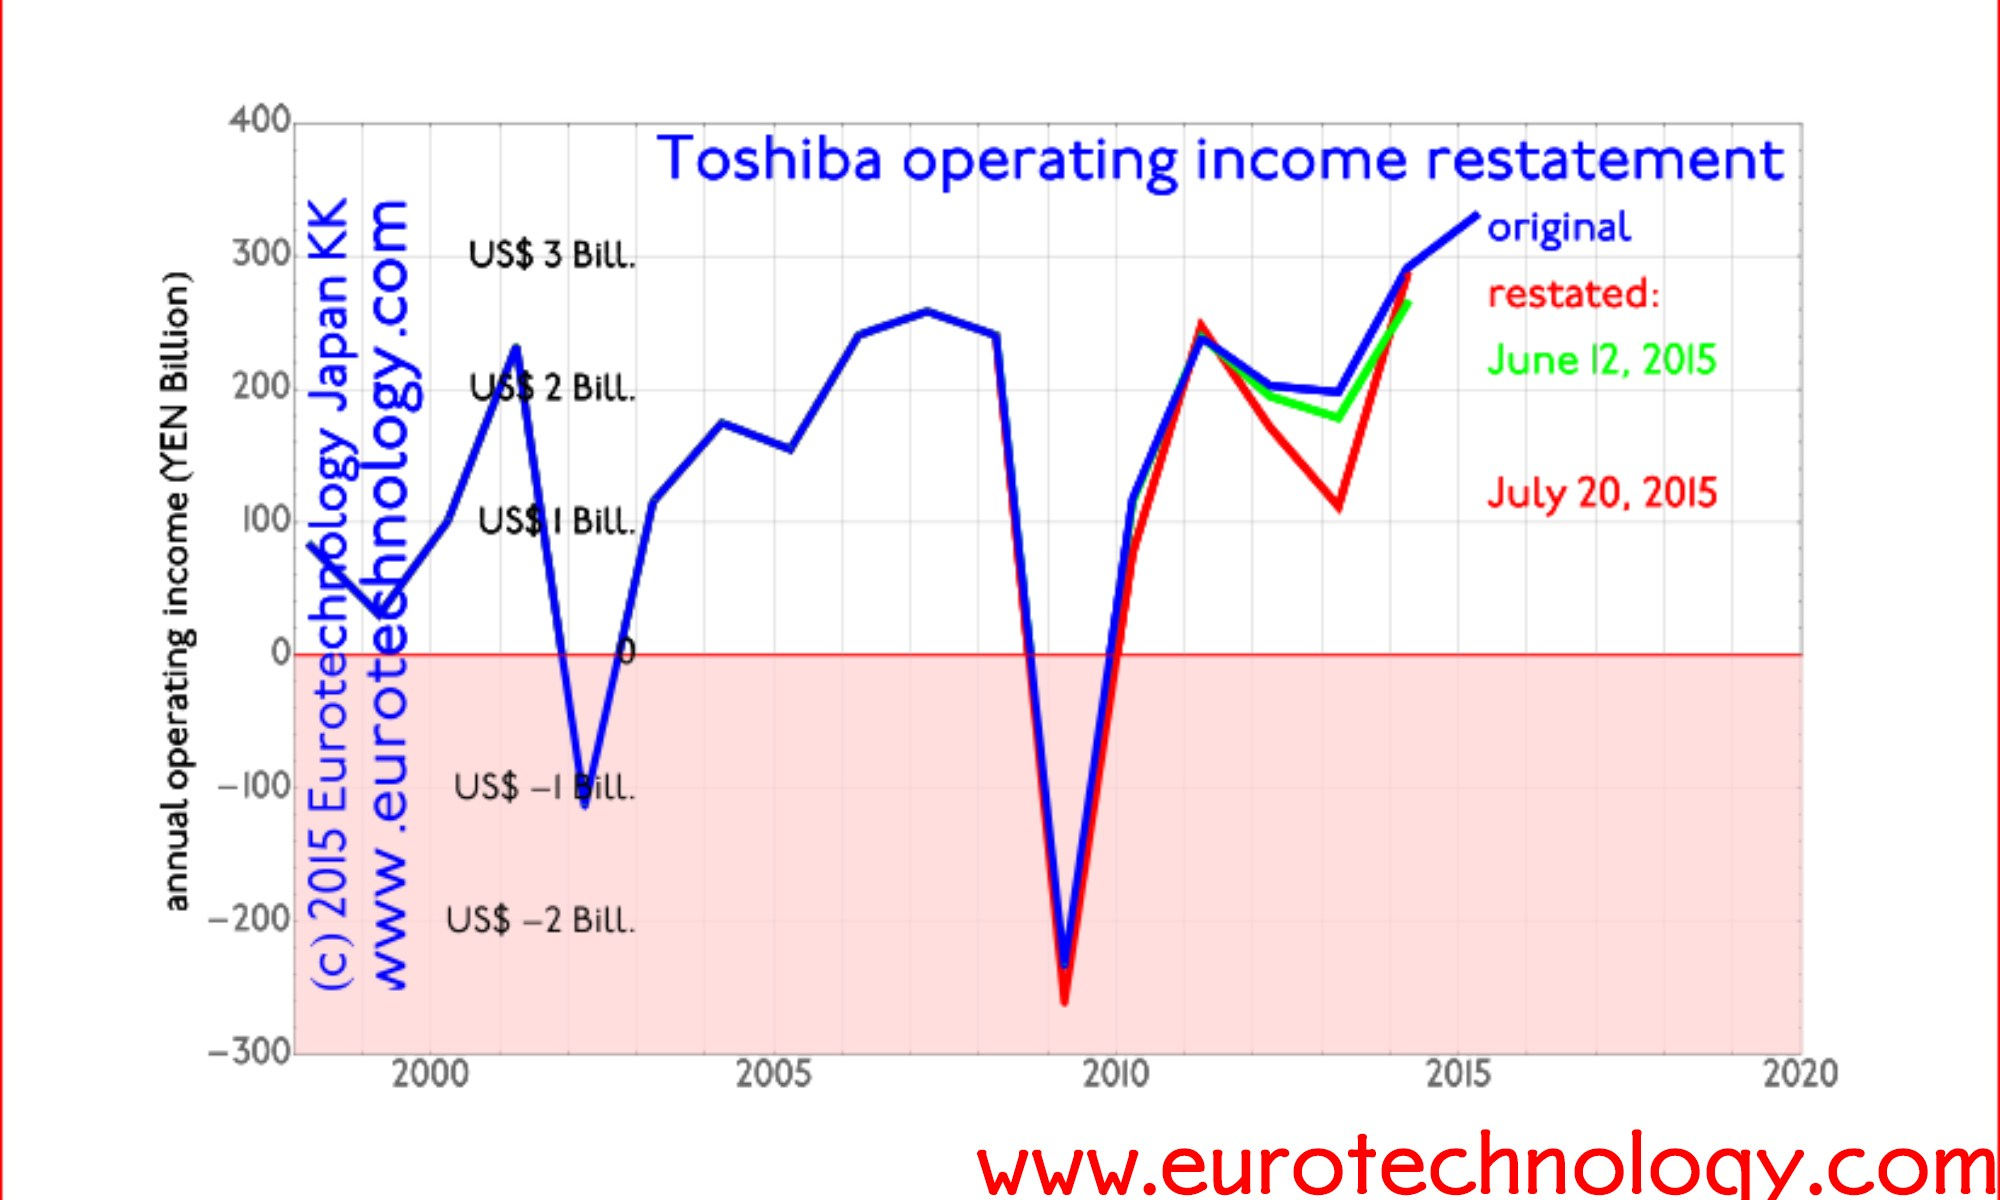 Toshiba income restatement